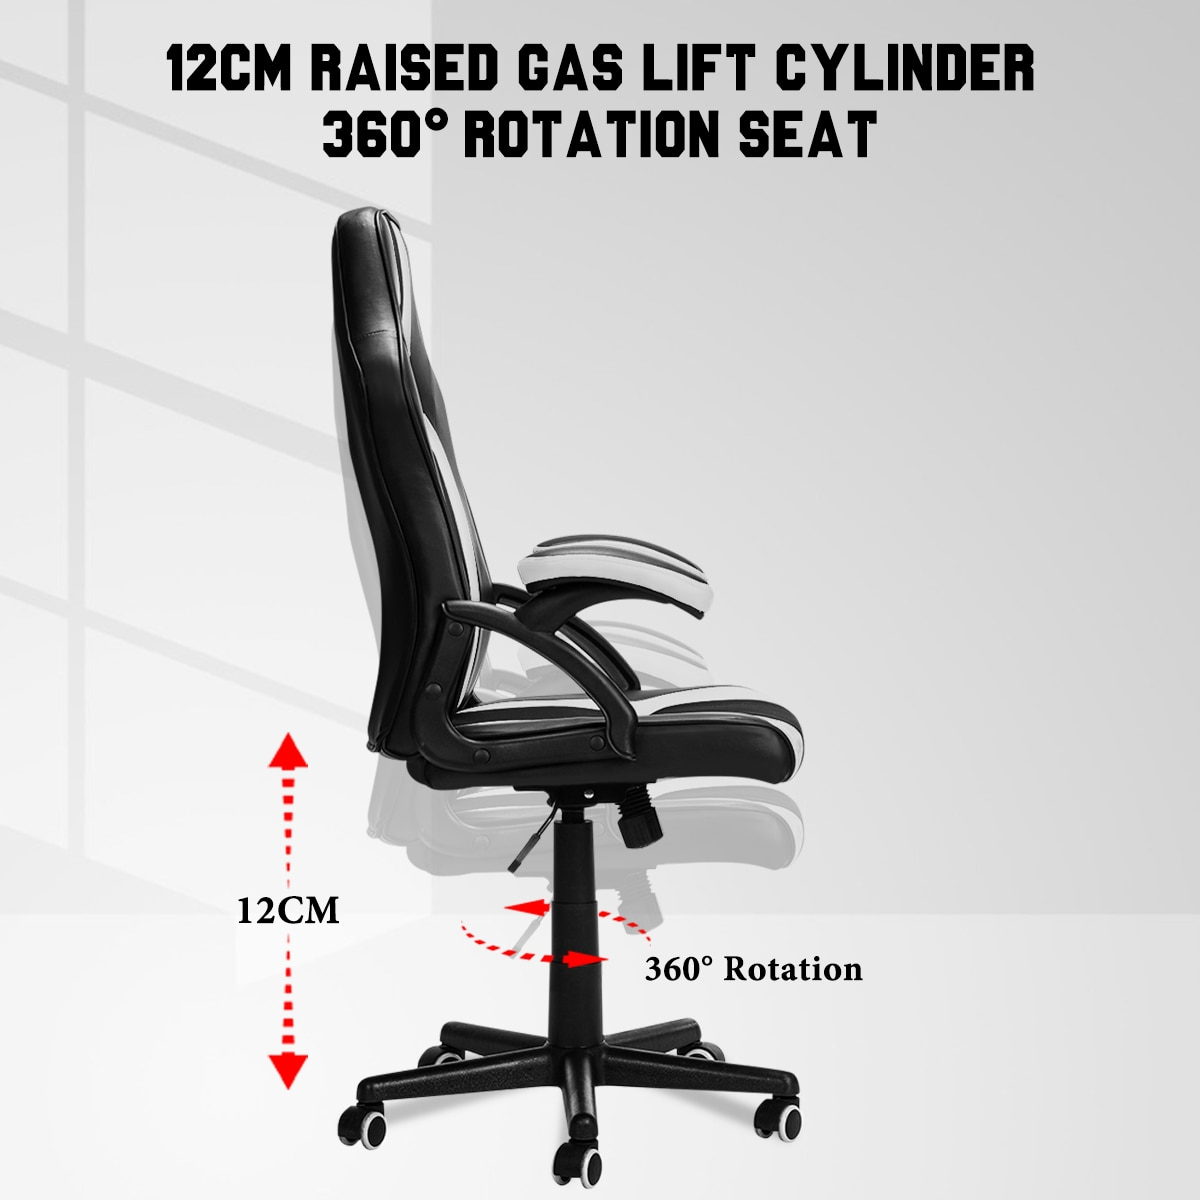 Hc4b82f182b2f4f539d35f9f79bd12411X - Gaming Office Chairs Executive Computer Chair Desk Chair Comfortable Seating Adjustable Swivel Racing Armchair Office Furniture